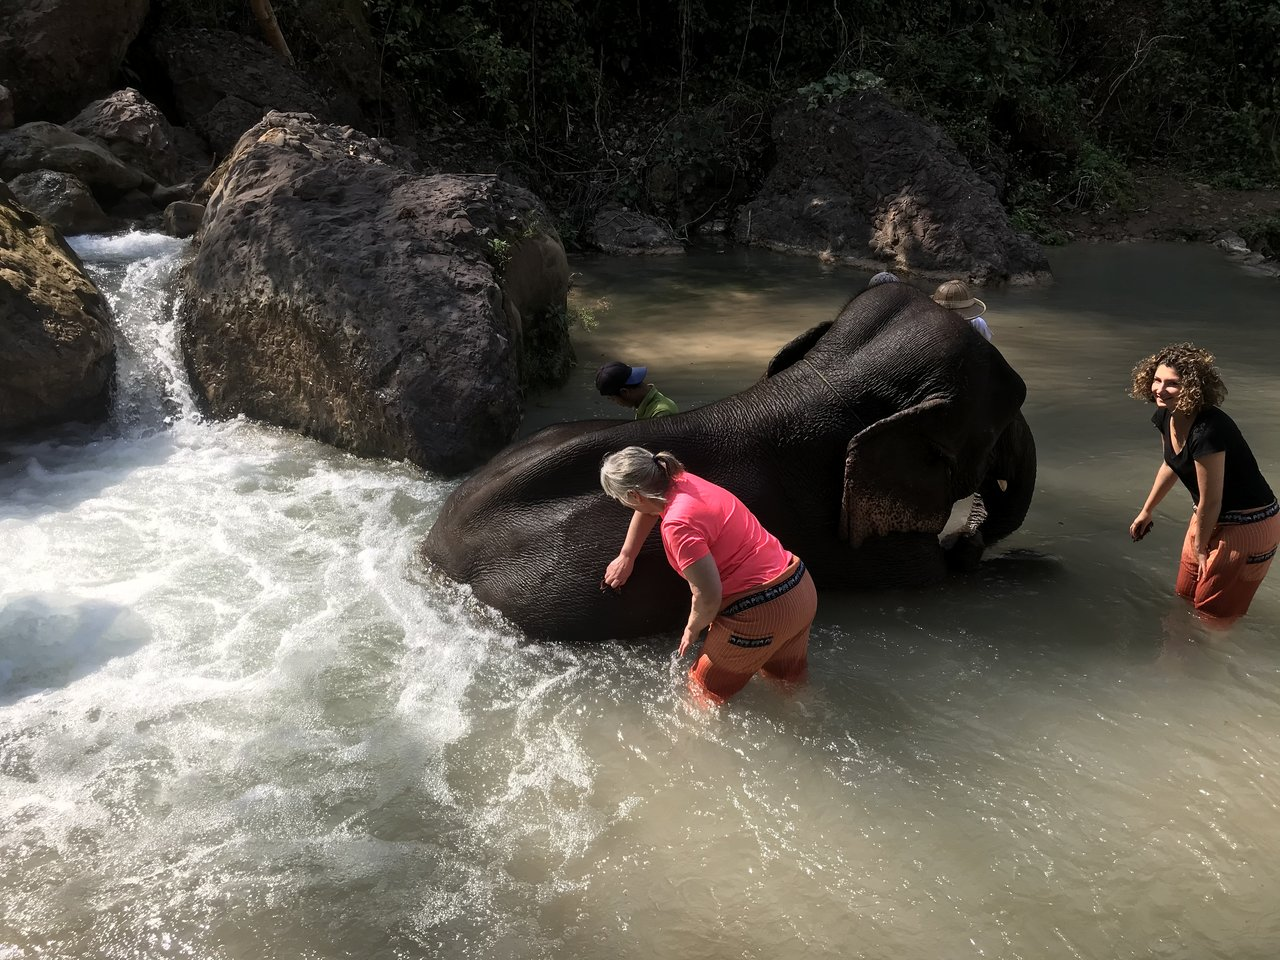 My favourite activity was bathing an elephant | Photo taken by Bonnie S